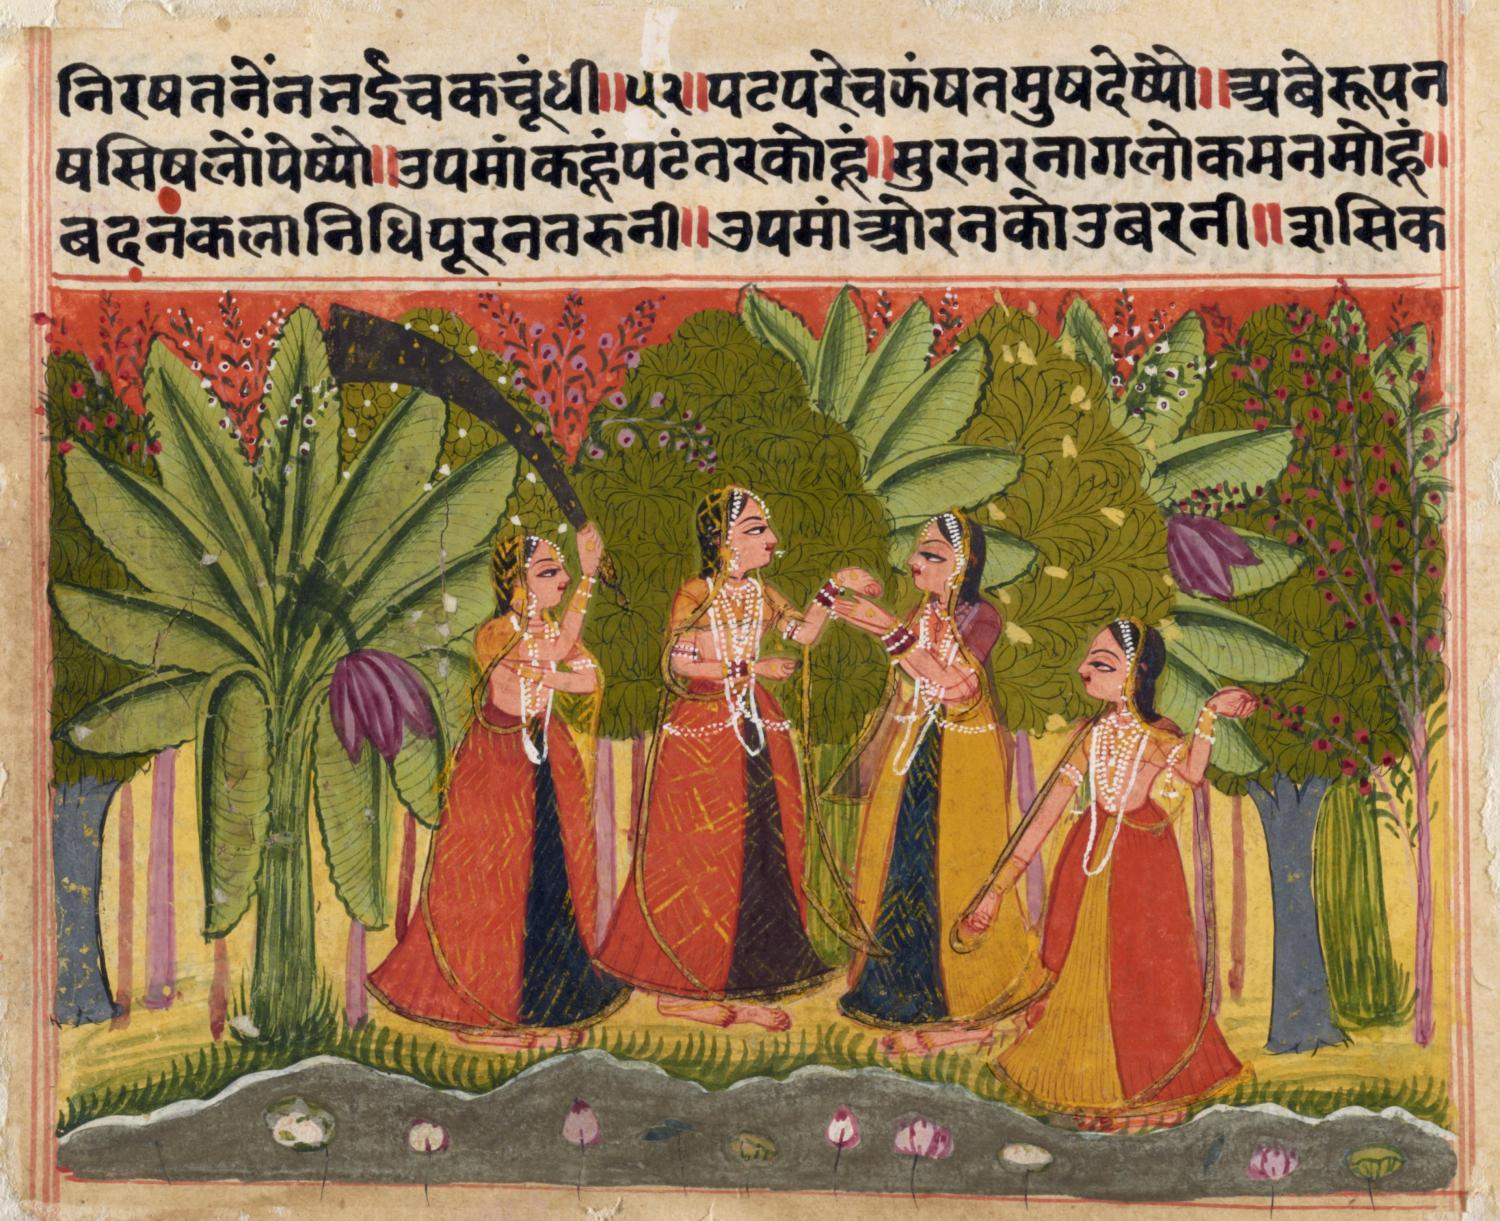 Page from a Birha poem of separation and longing, showing Radha with her attendants in a grove. India, Rajasthan, possibly Bundi or Kotah School, 17th century. Opaque water color on paper. Gift of George P. Bickford. 1970-10-3